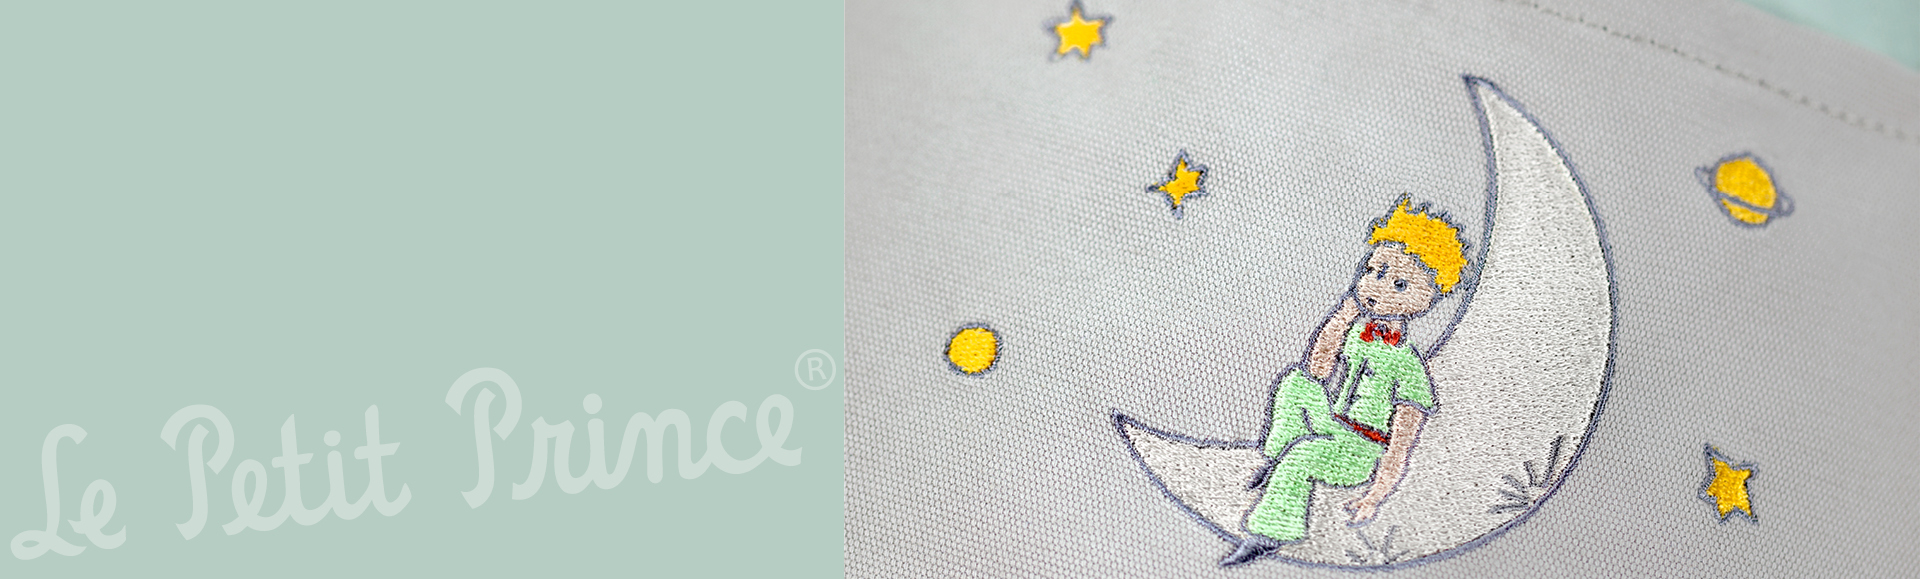 Le Petit Prince by manduca DollCarrier